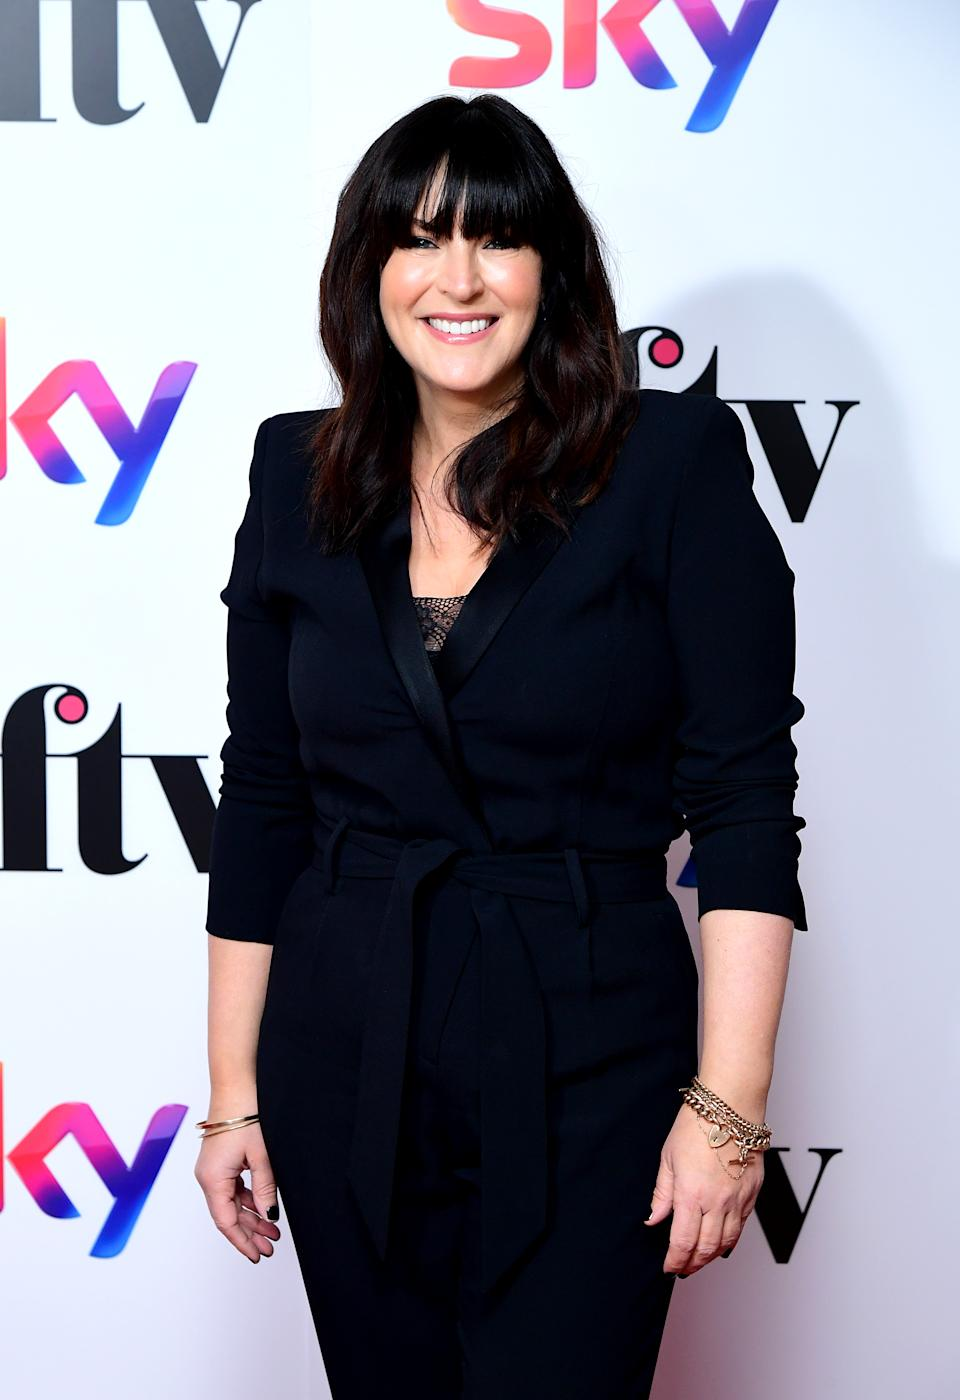 Anna Richardson attending the Women in Film and TV Awards 2019 at the Hilton, Park Lane, London. (Photo by Ian West/PA Images via Getty Images)